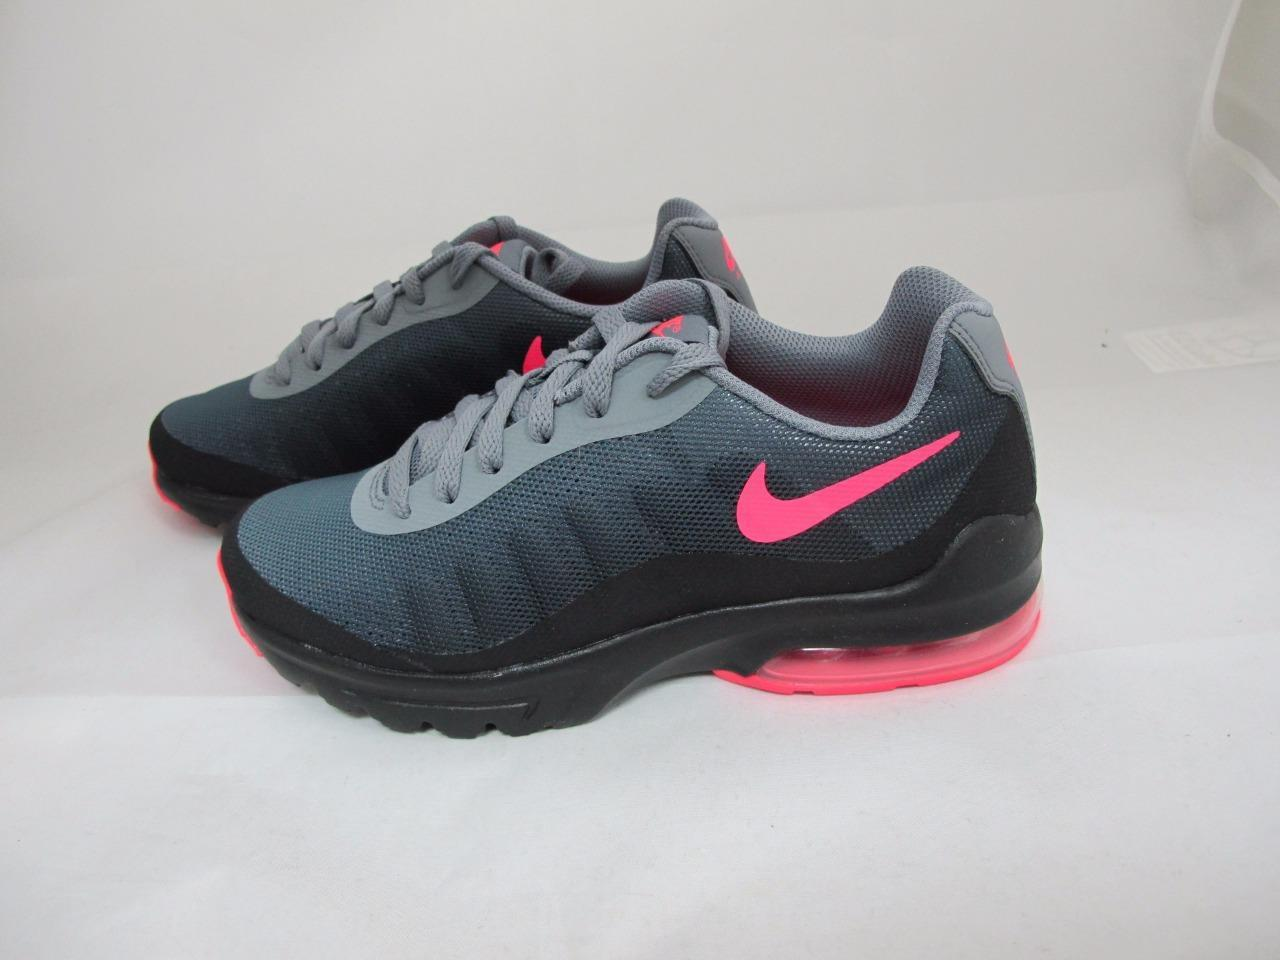 NEW JUNIOR'S NIKE AIR MAX INVIGOR 749575 006